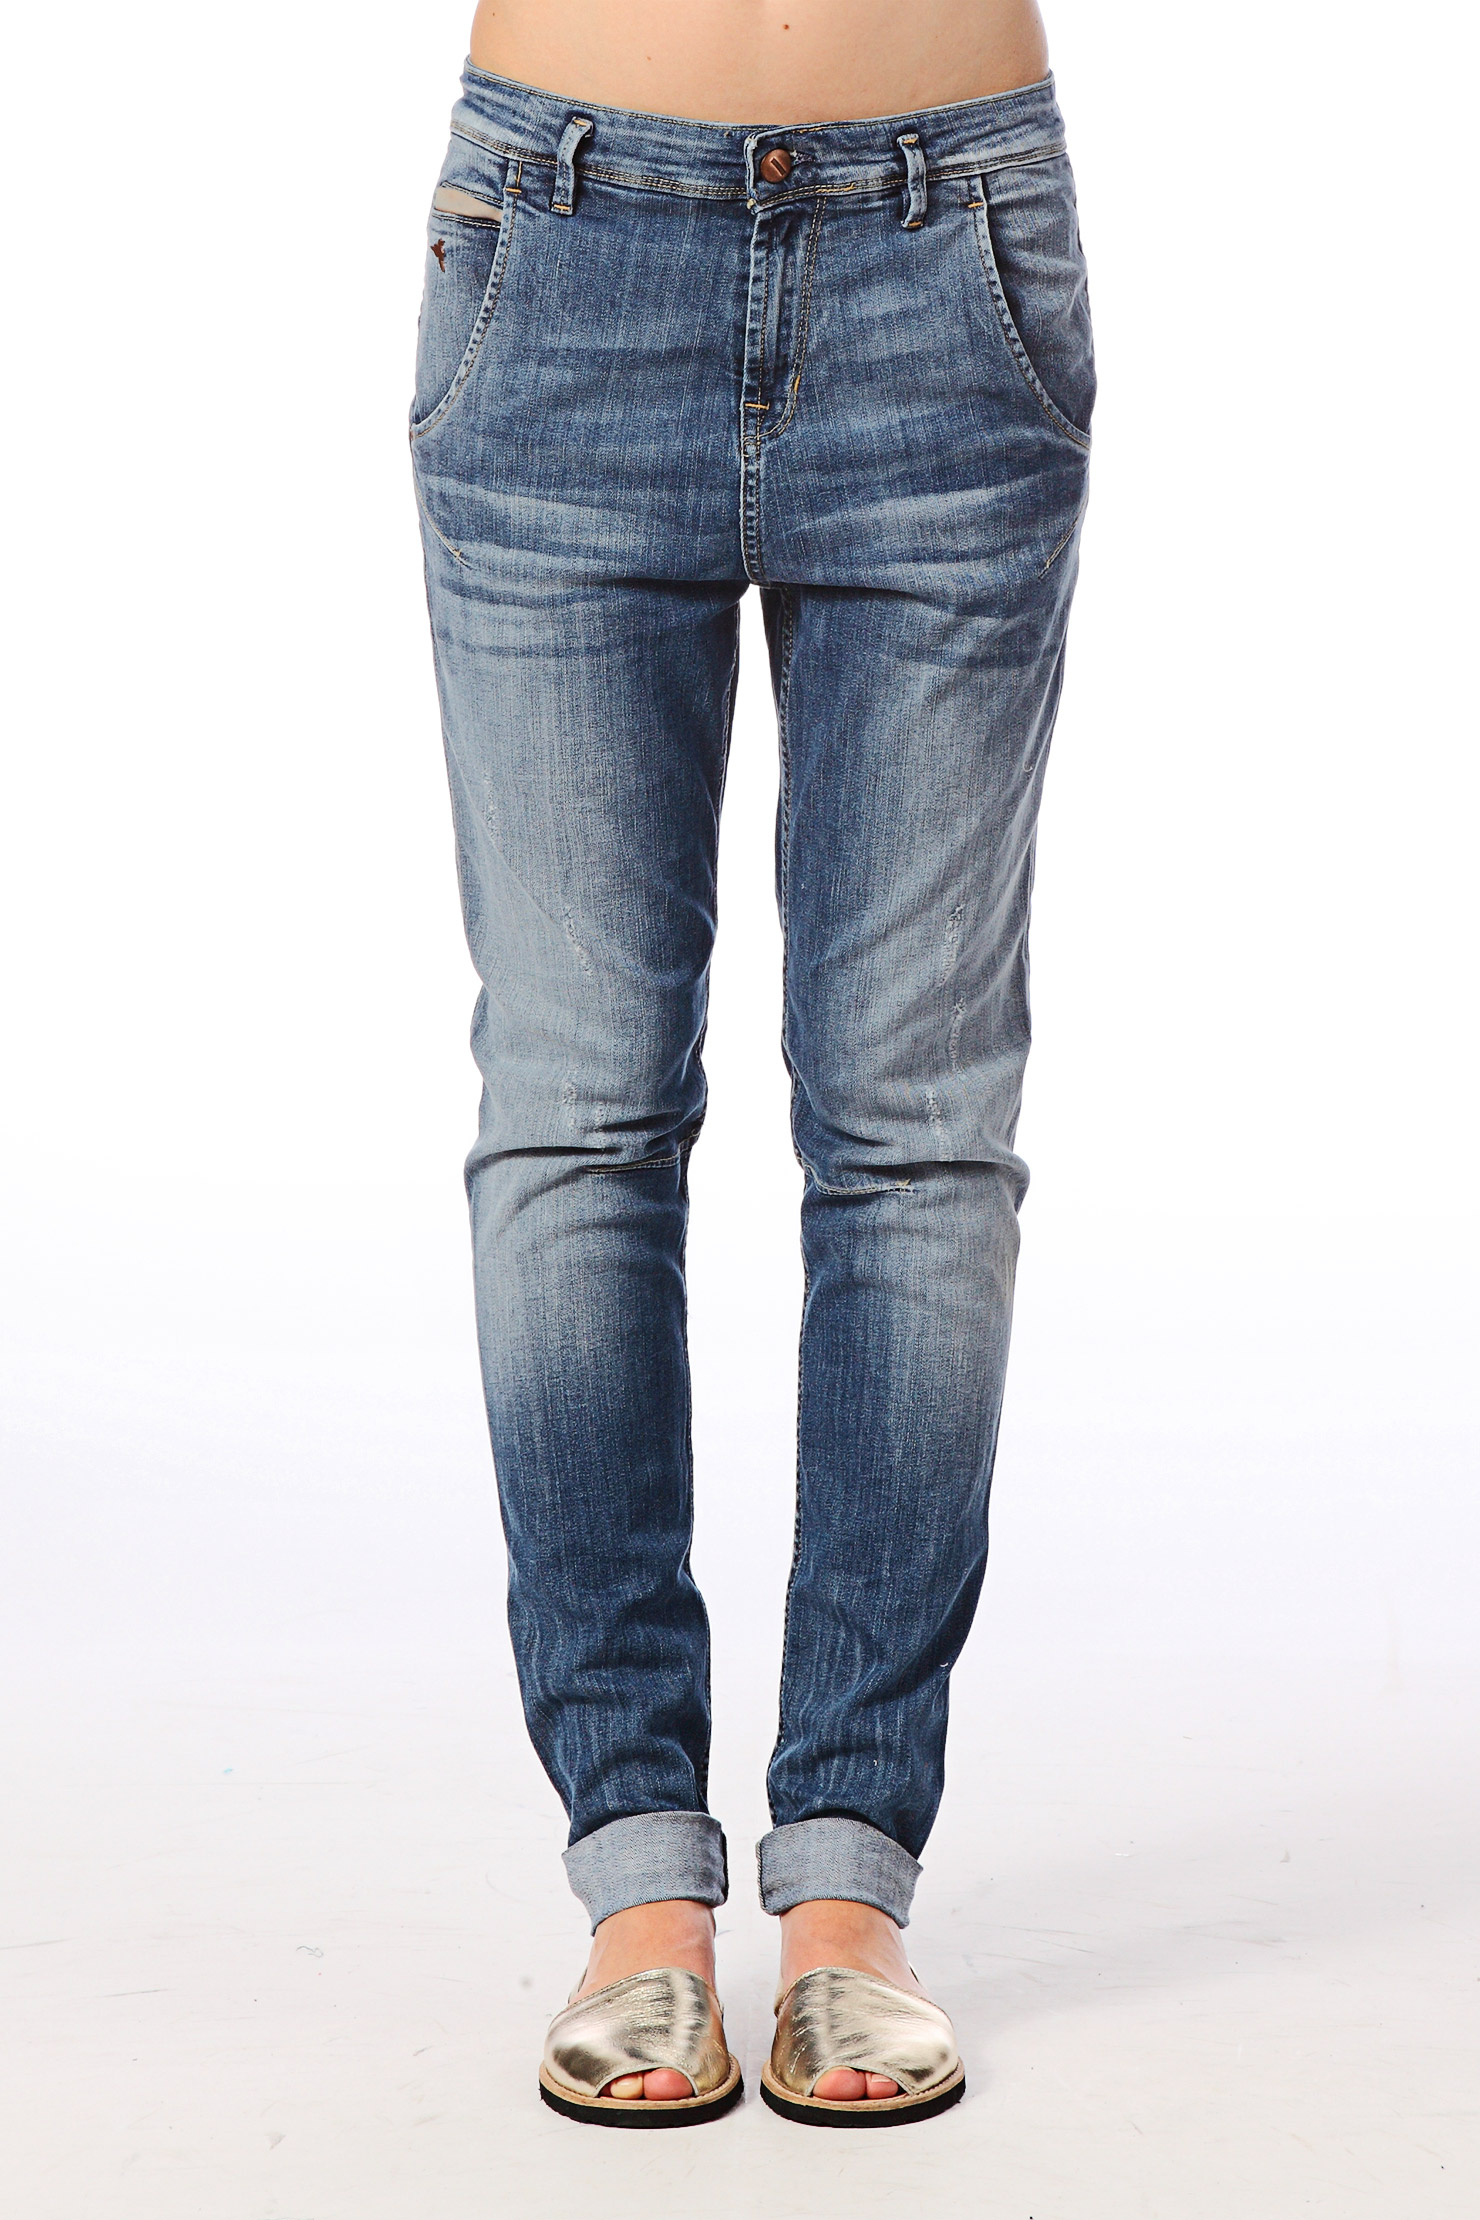 DENIM - Denim trousers Ichi Free Shipping Get Authentic High Quality Sale Online Sale Clearance dQigxhM